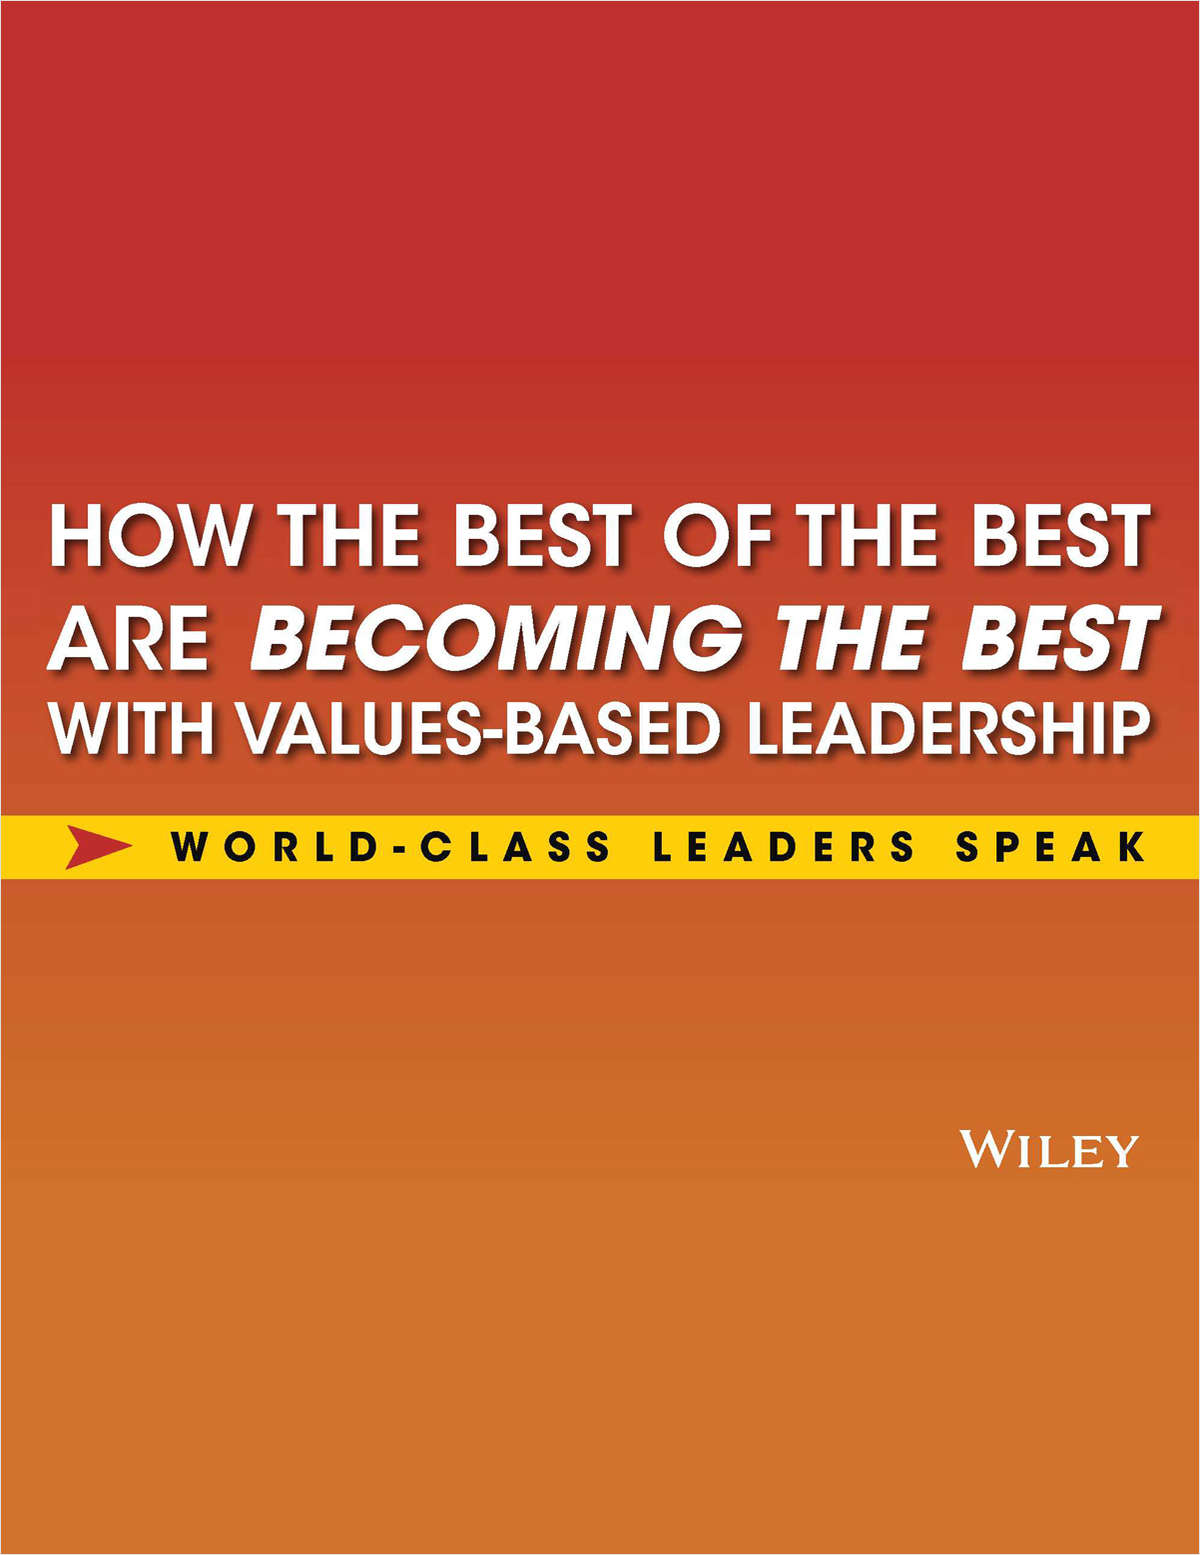 The Best of the Best in Values-Based Leadership